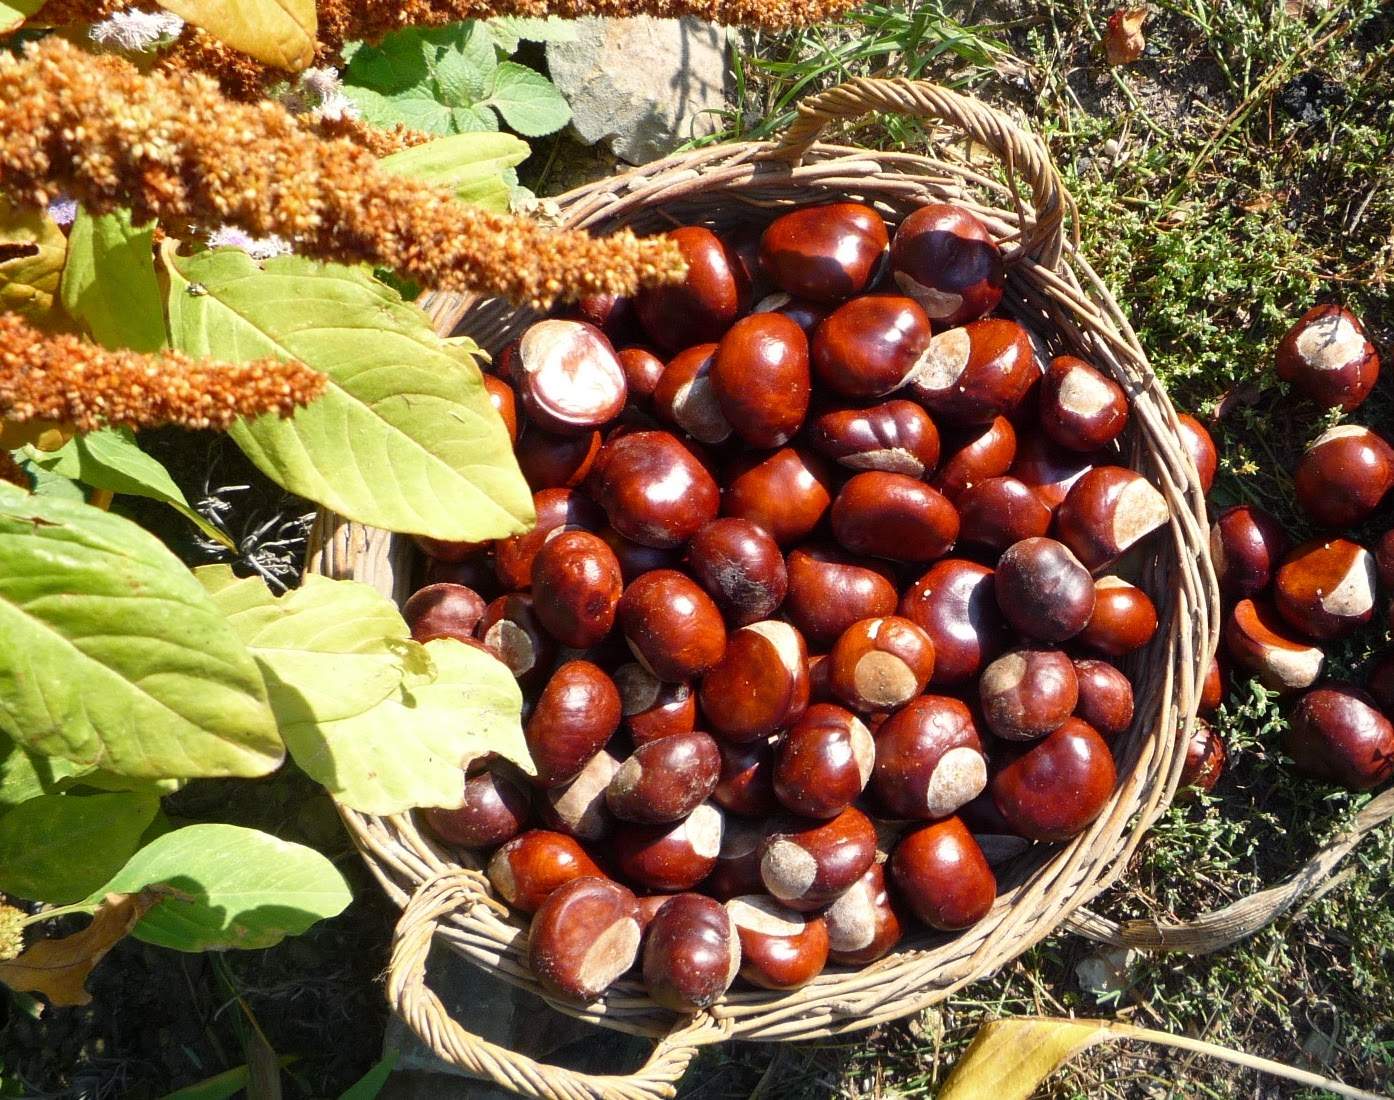 Conkers the fruit of the Horse Chestnut